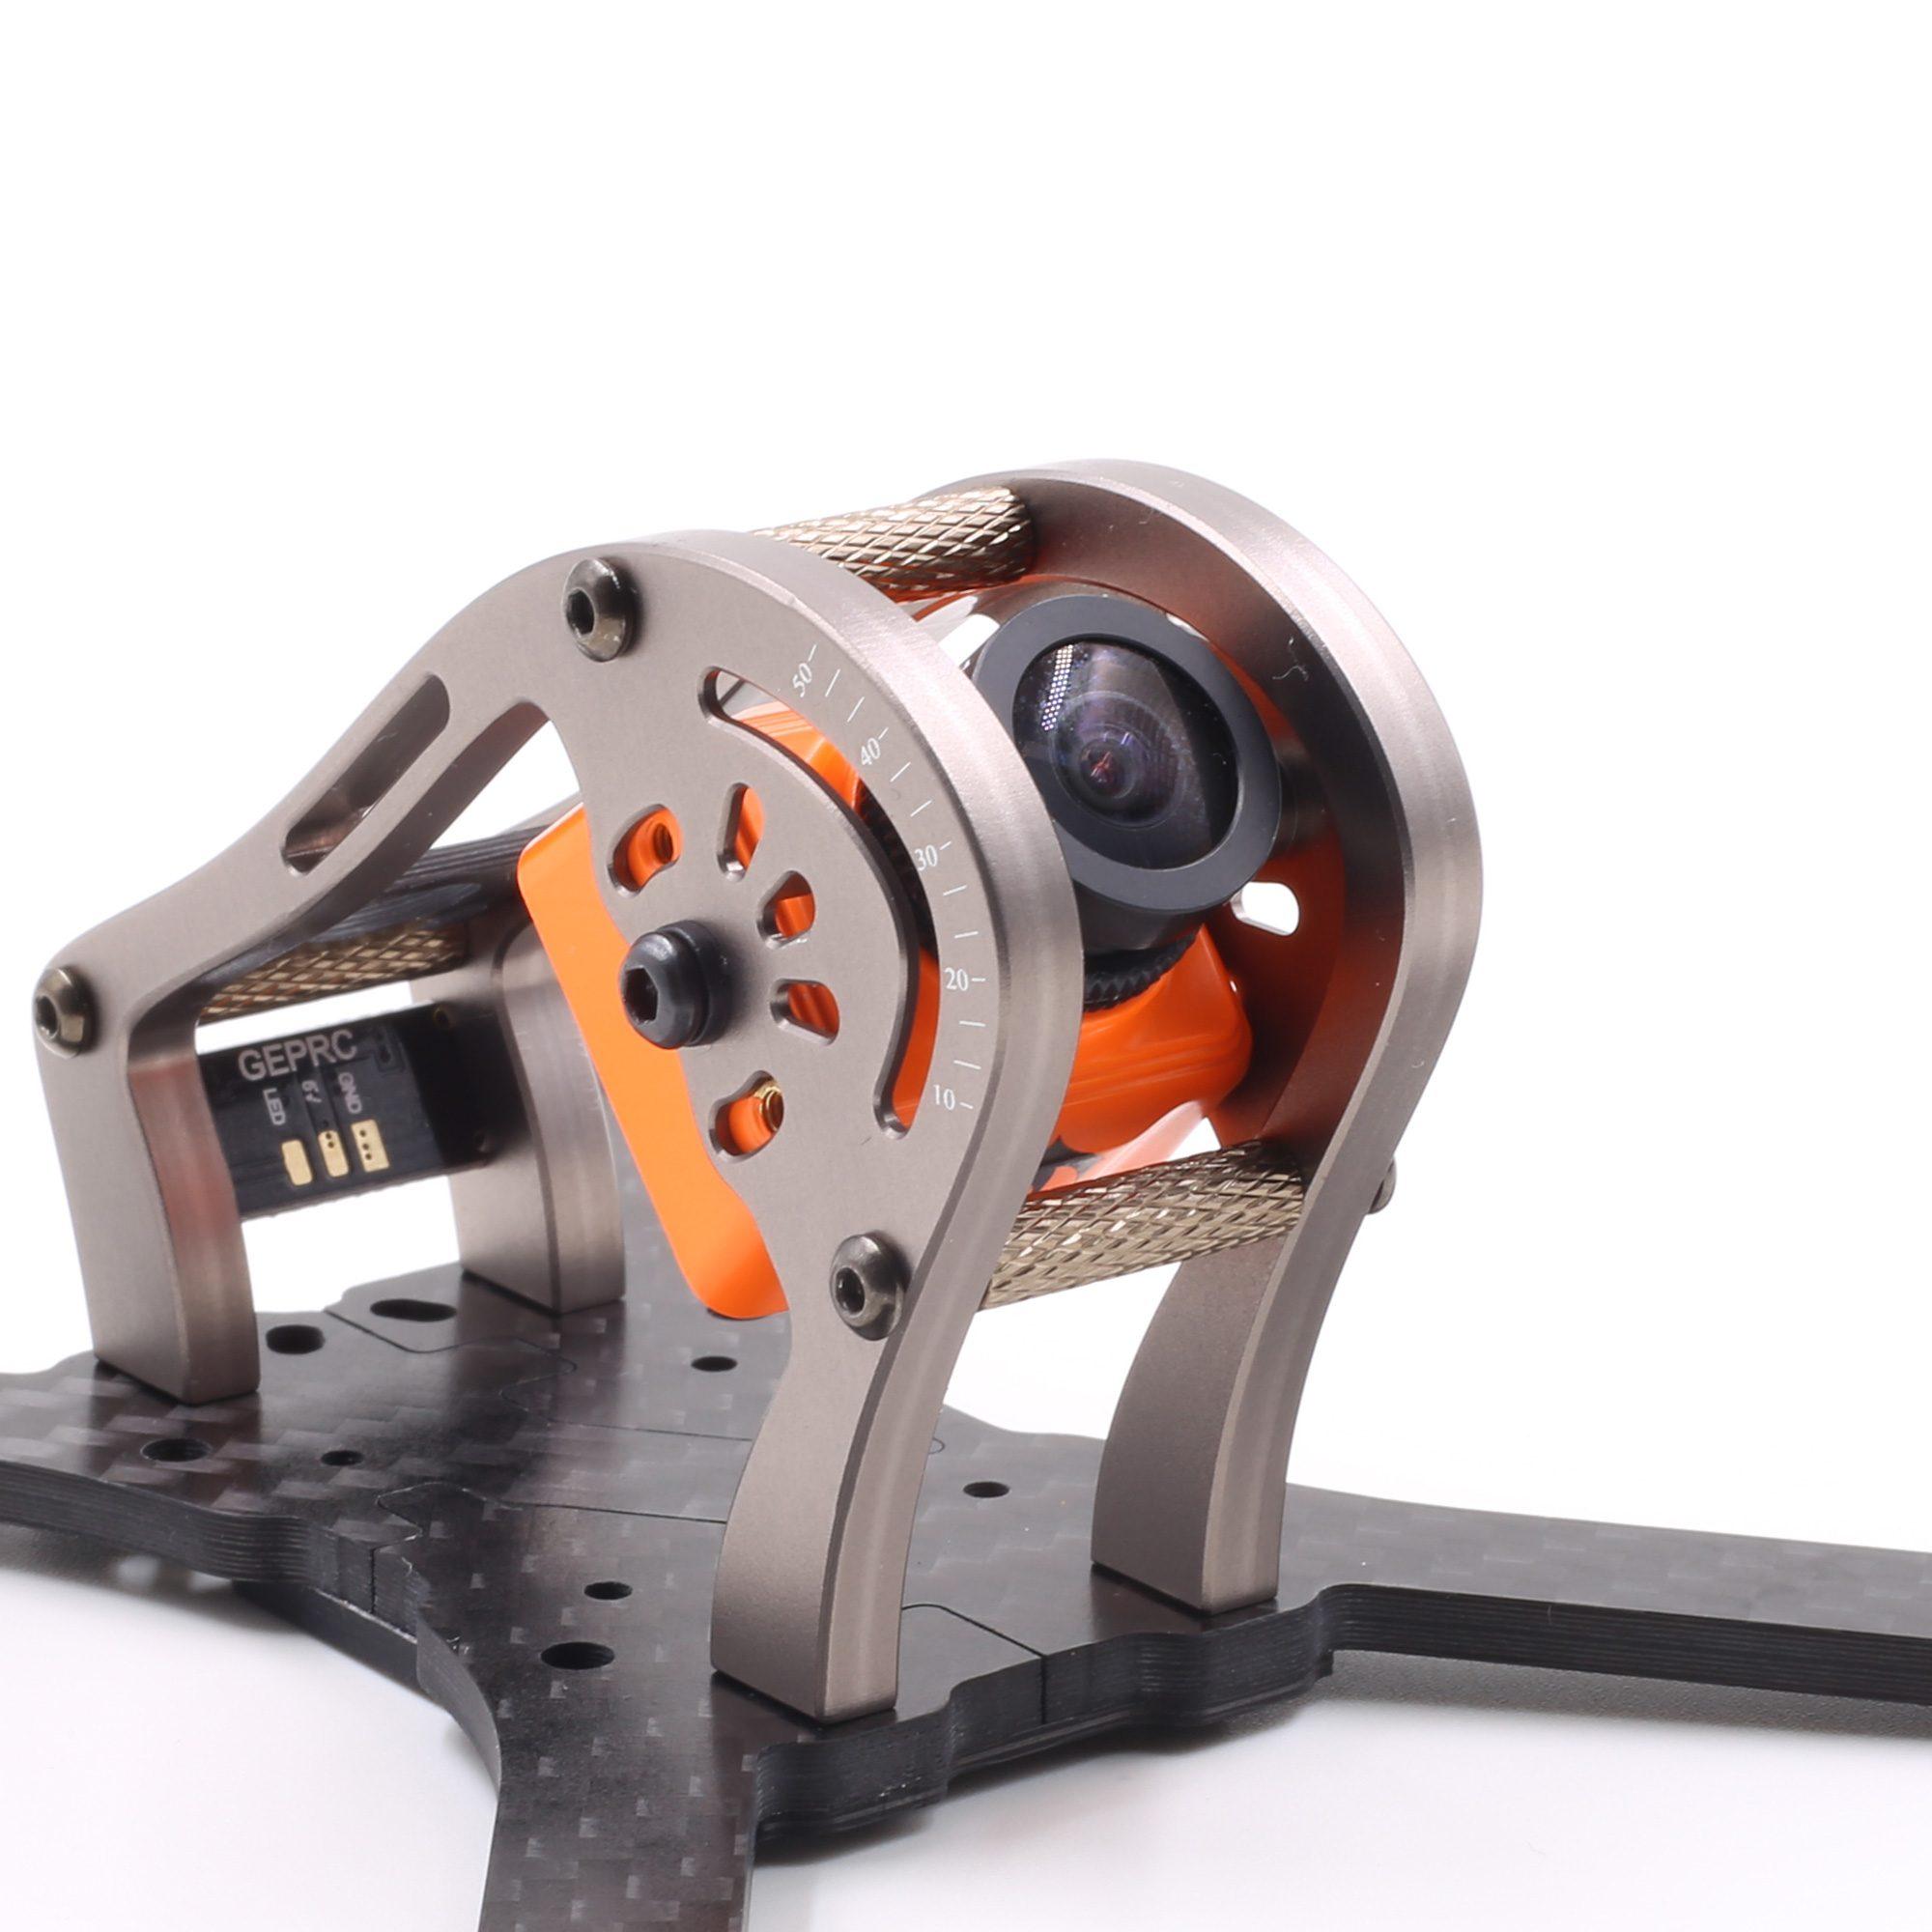 GEP-MSX3 145mm Carbon Fiber 3mm Arm FPV Racing Frame